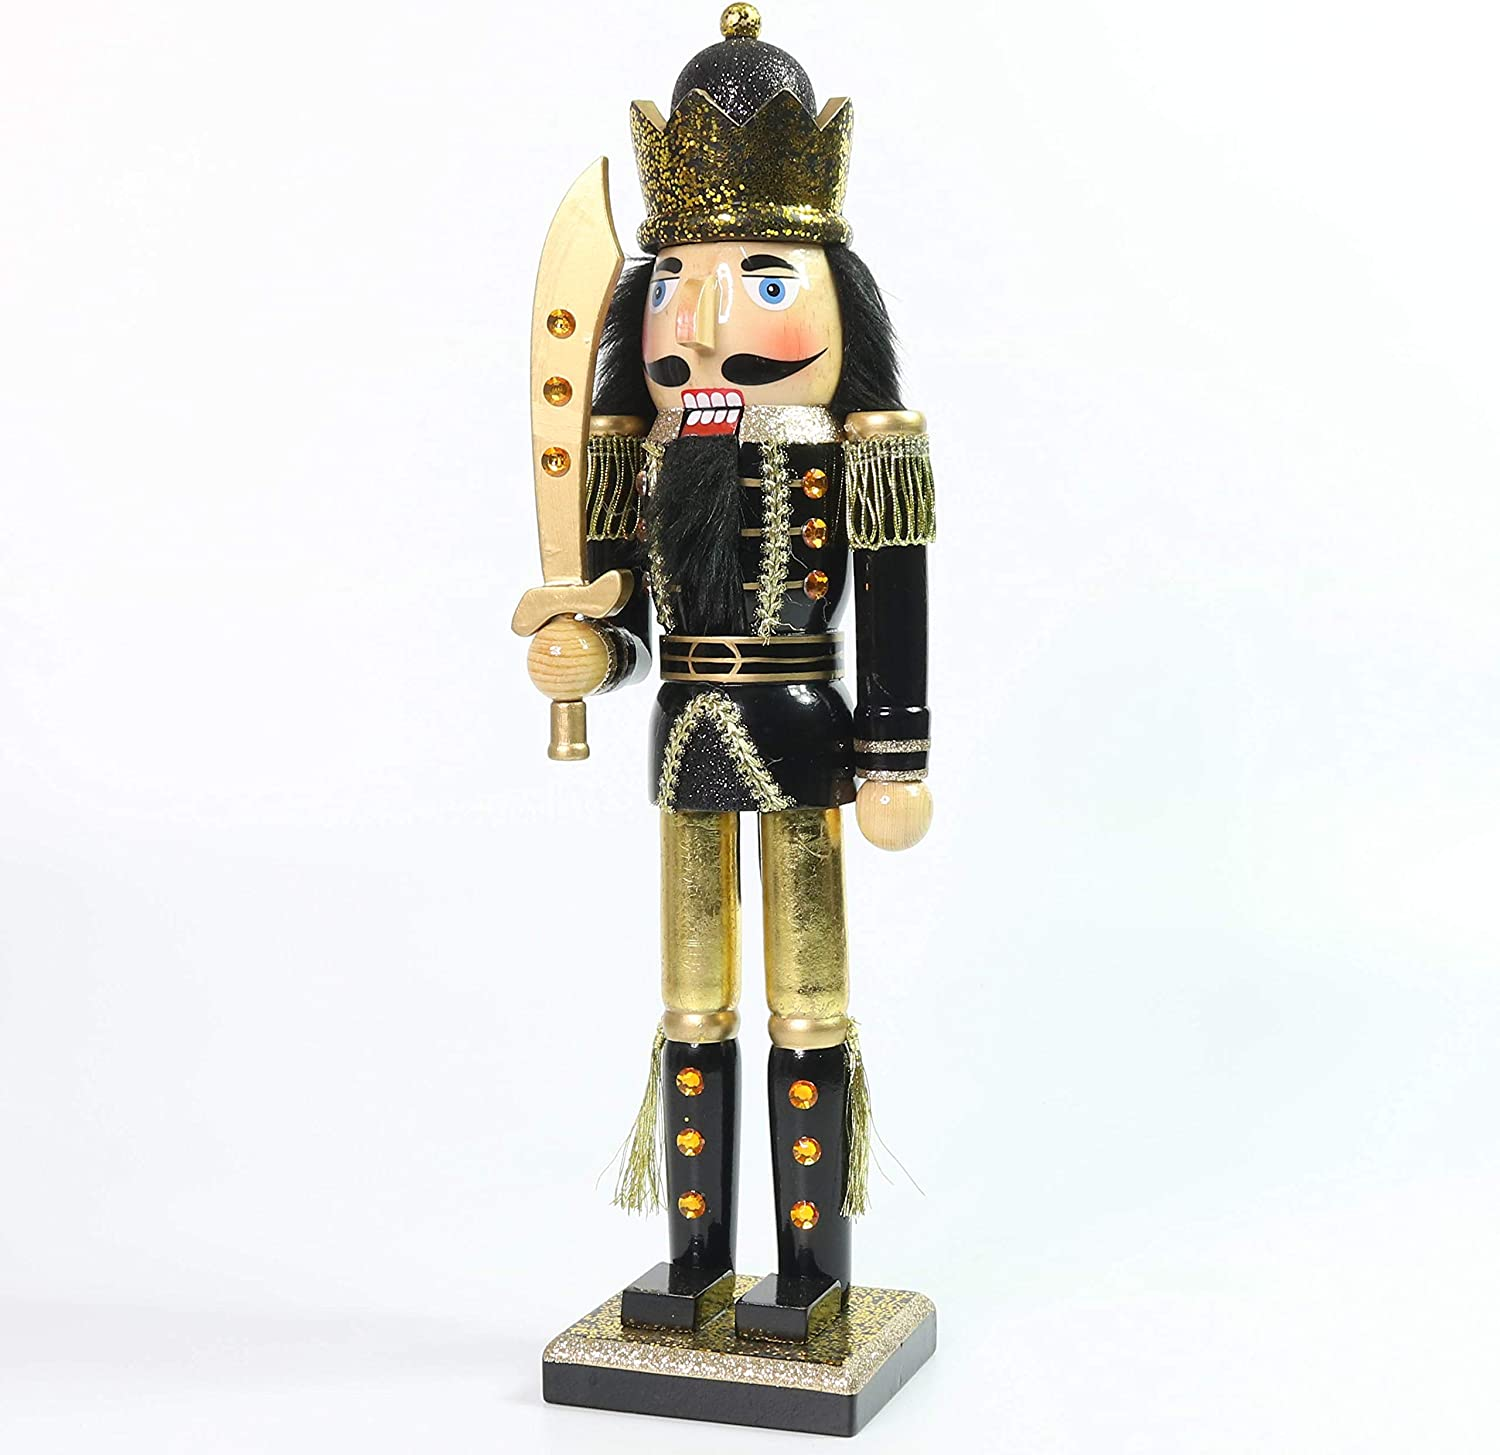 Christmas Holiday Wooden Nutcracker Quality inspection Albuquerque Mall Figure Soldier with Bla King